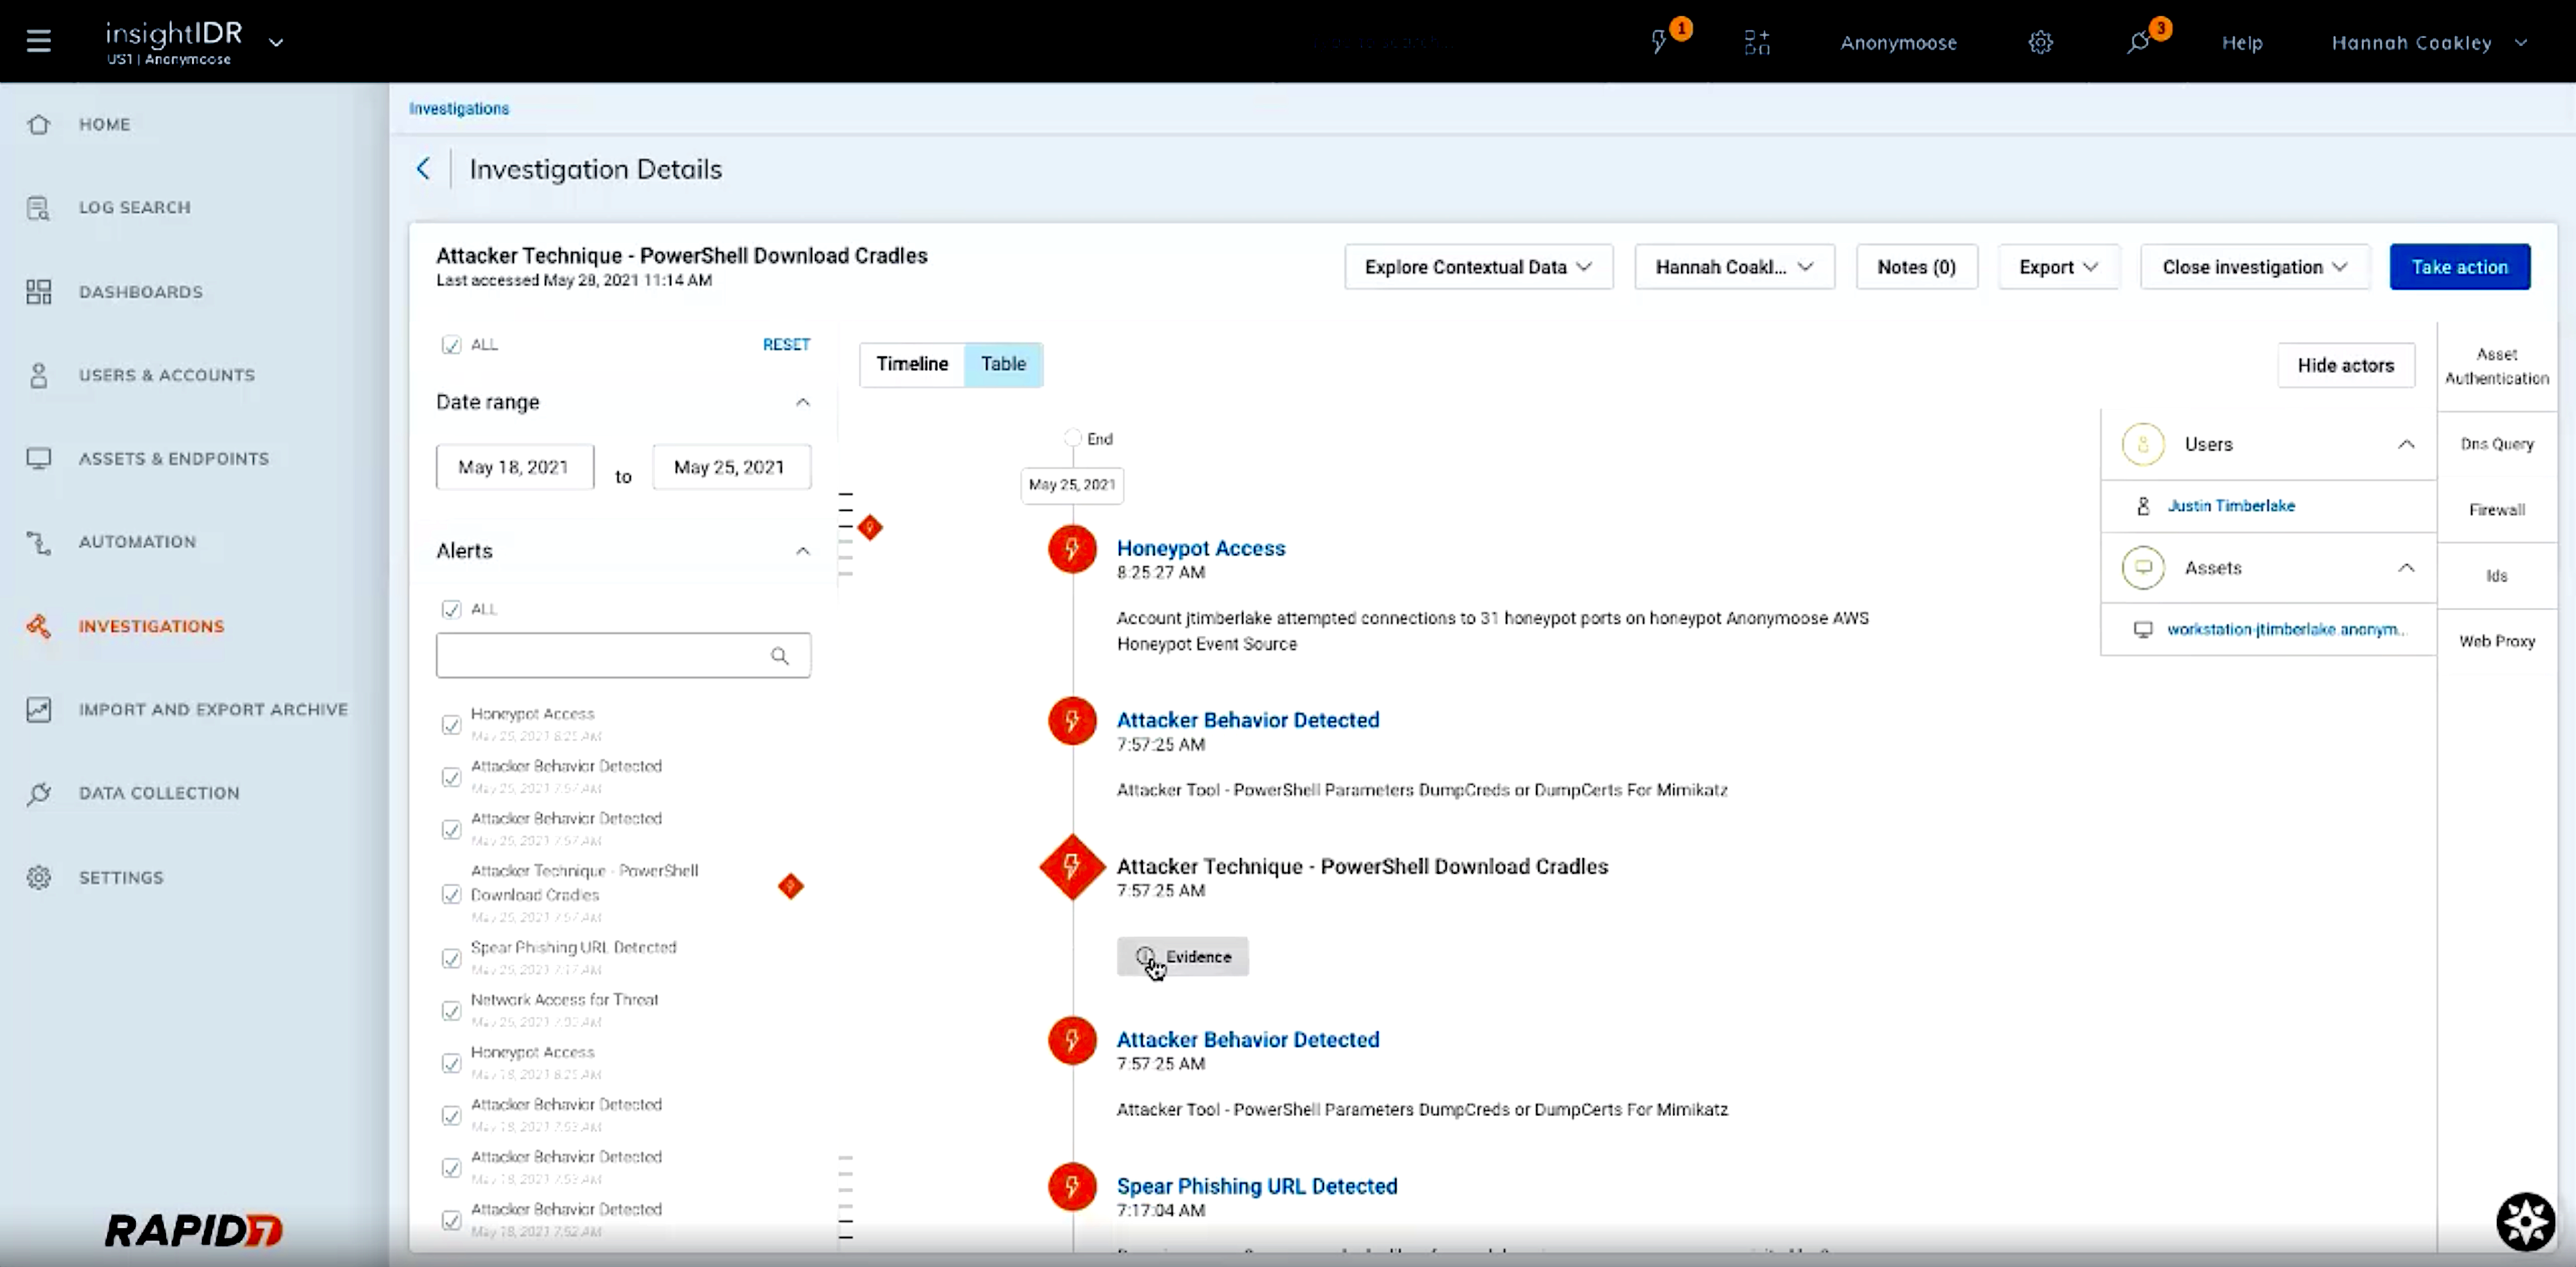 Administrators can dive into specific investigation details reviewing associated web traffic for a time range, review evidence, and analyze events in InsightIDR.